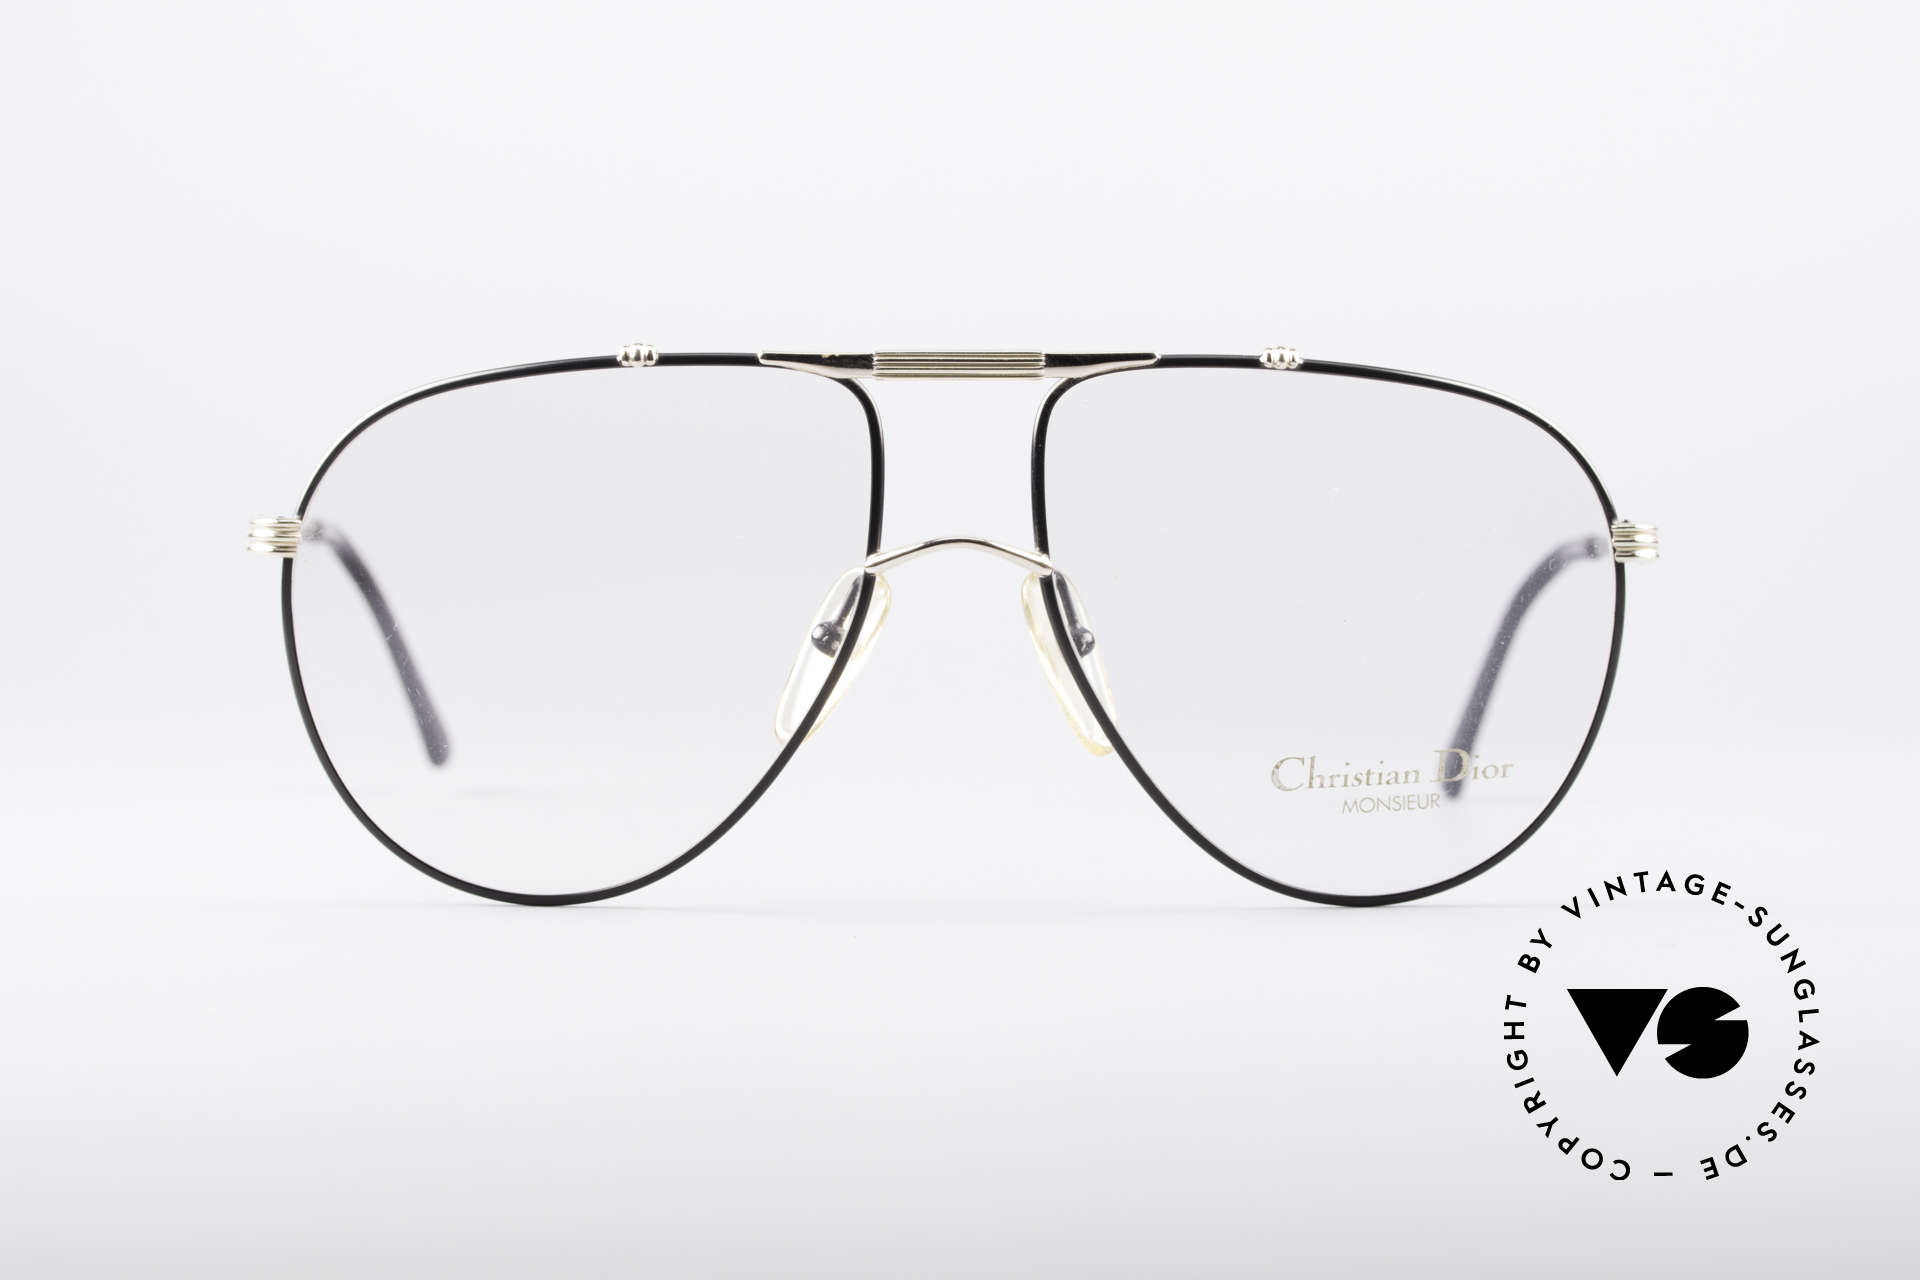 Christian Dior 2248 XL 80's Eyeglasses